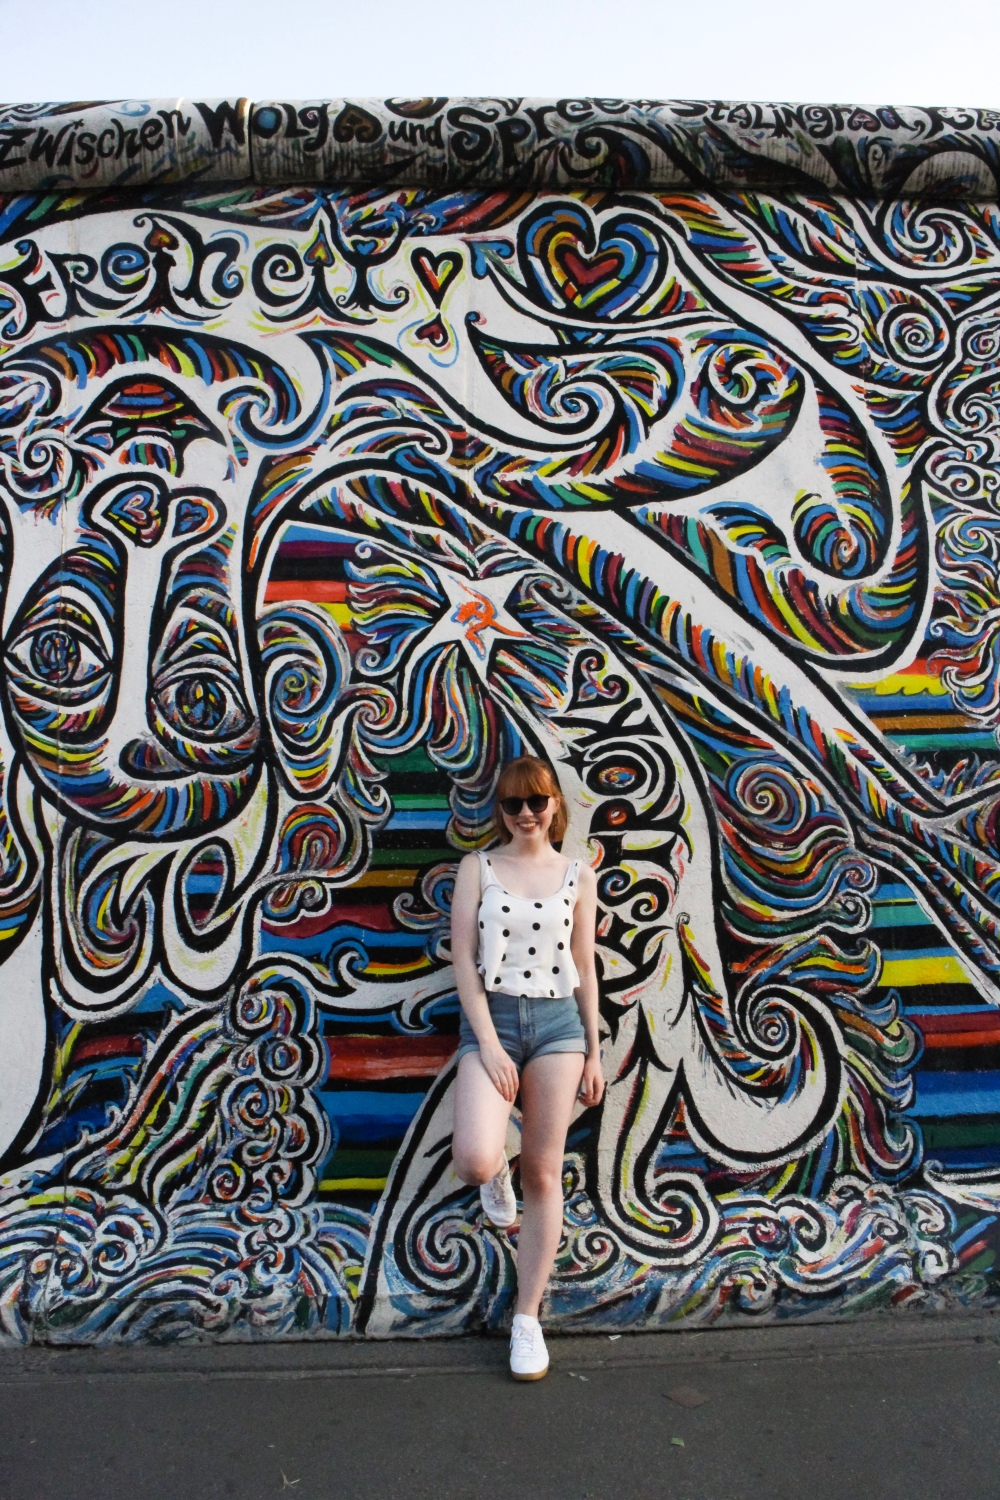 A redhead girl wearing shorts and a tank top posing for a photo against multicoloured street art.